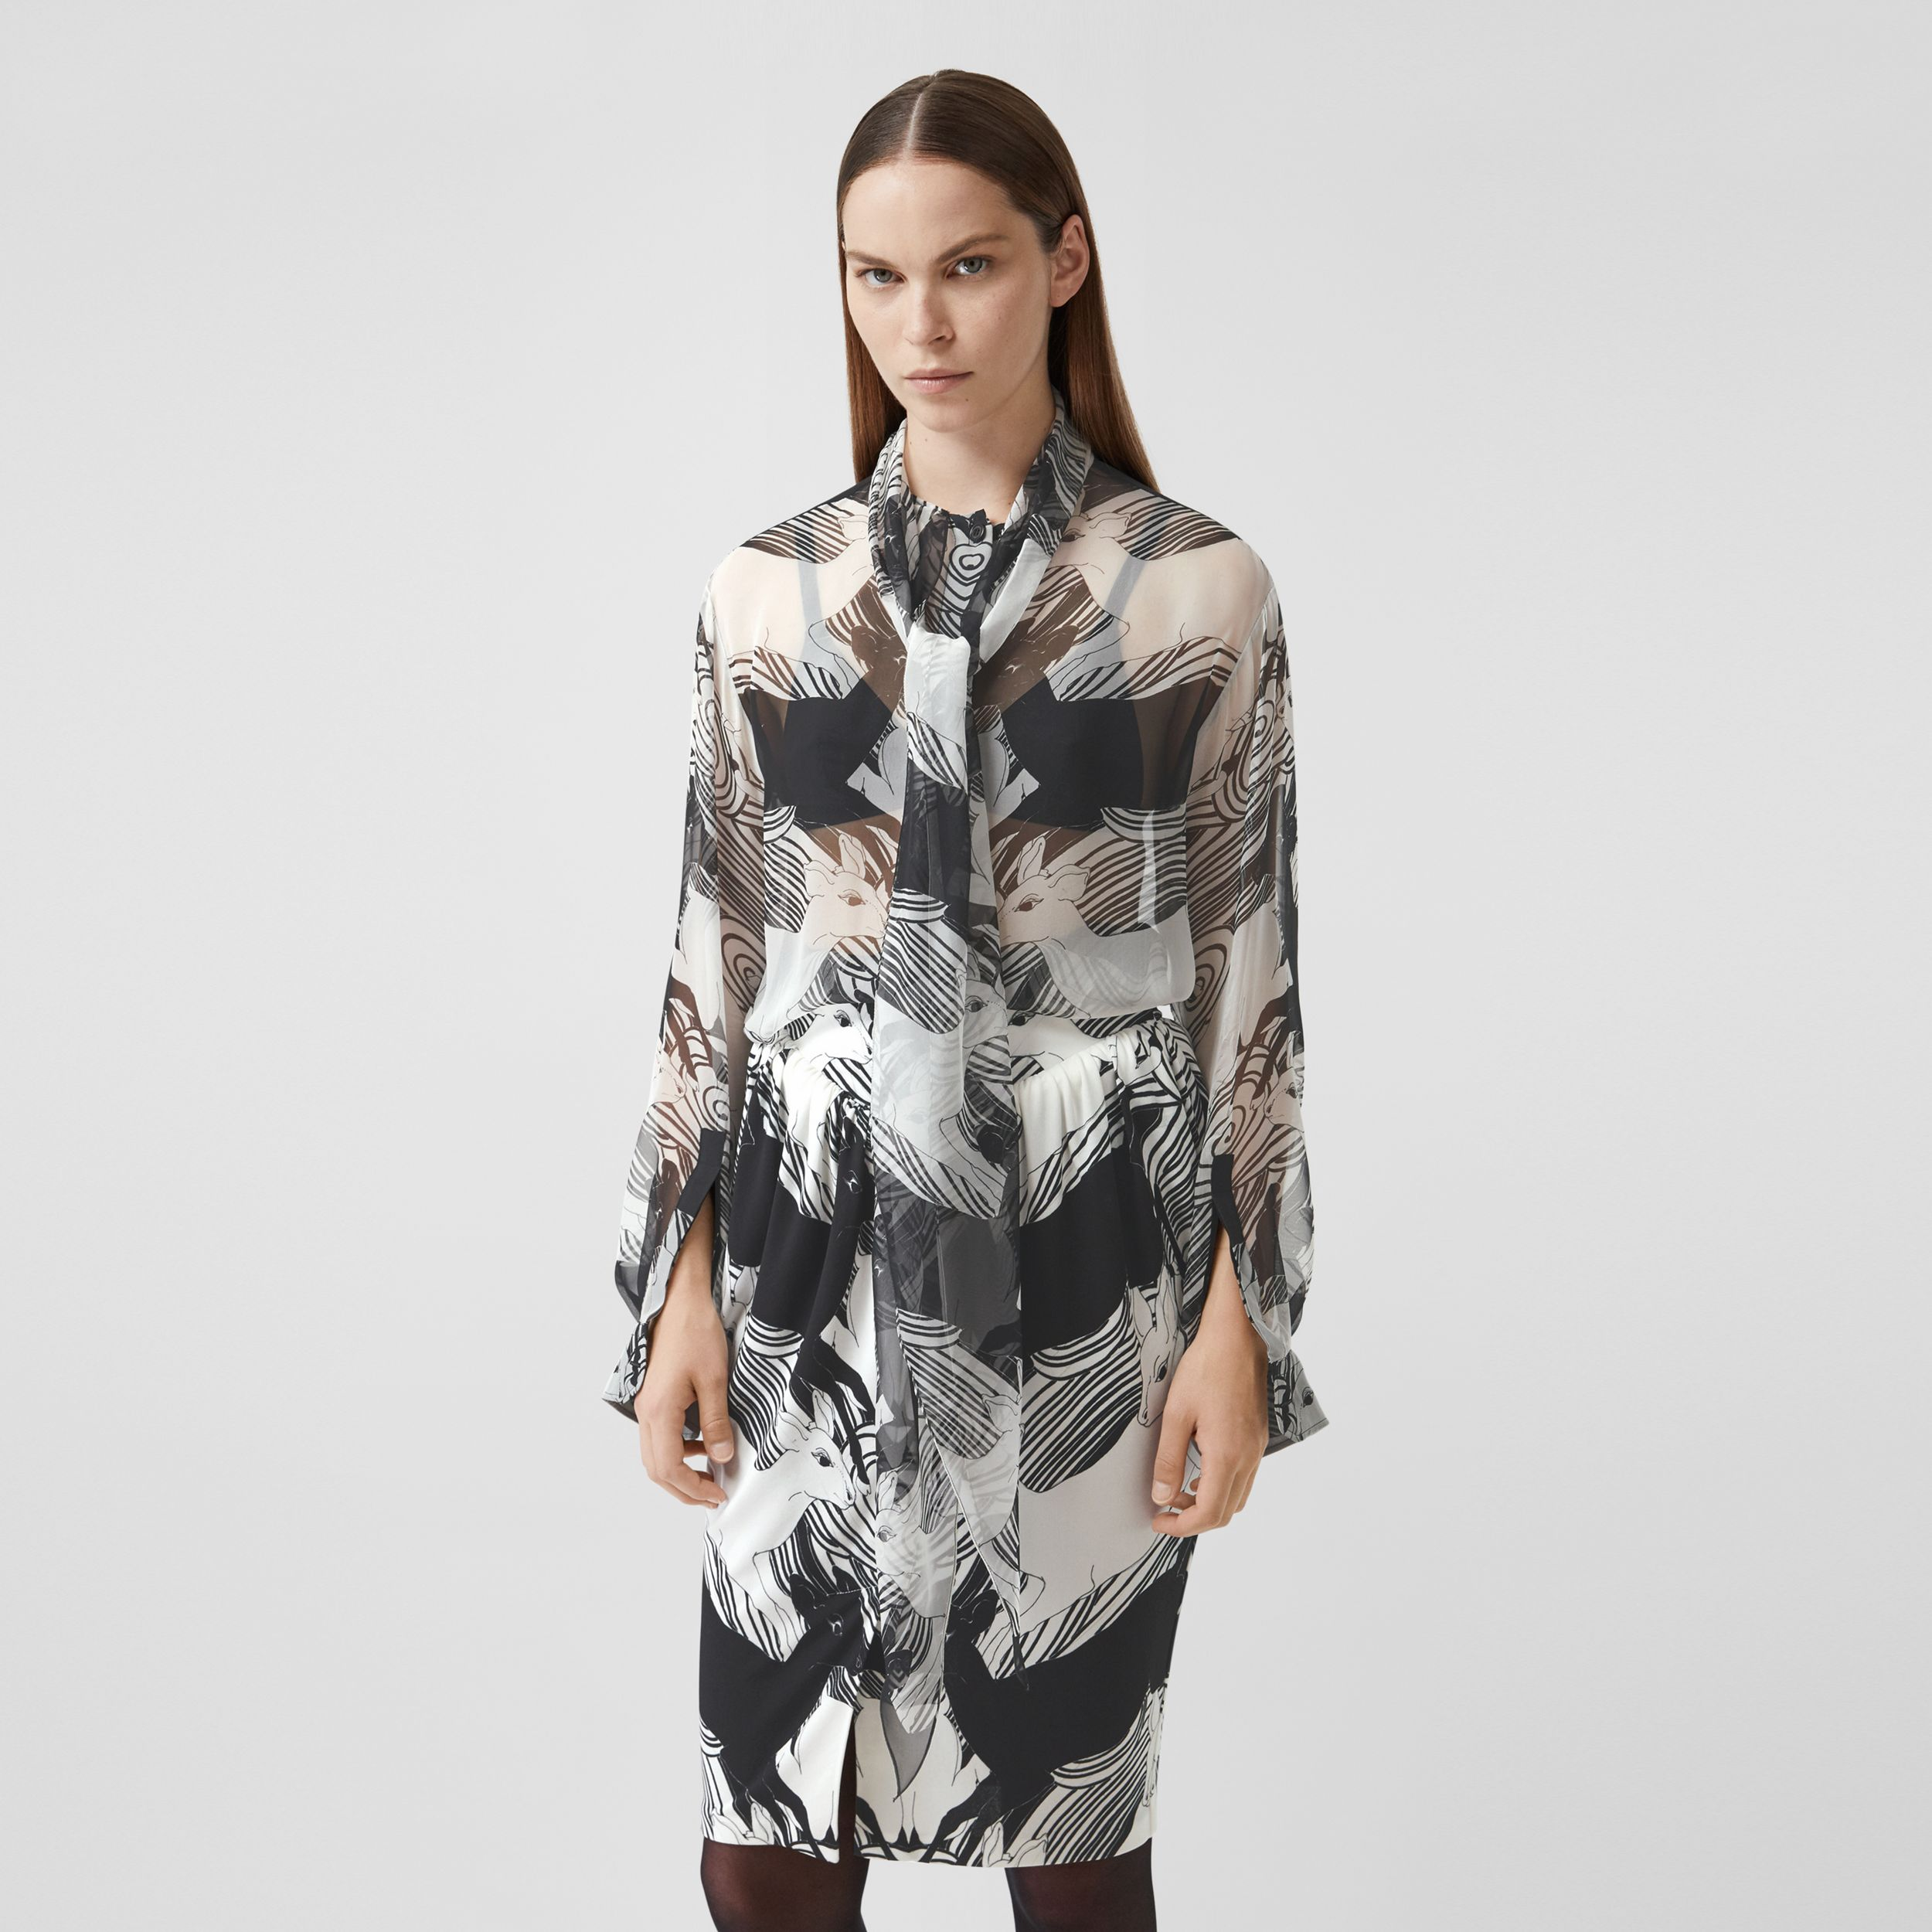 Deer Print Silk Chiffon Pussy-bow Blouse in Monochrome - Women | Burberry - 1